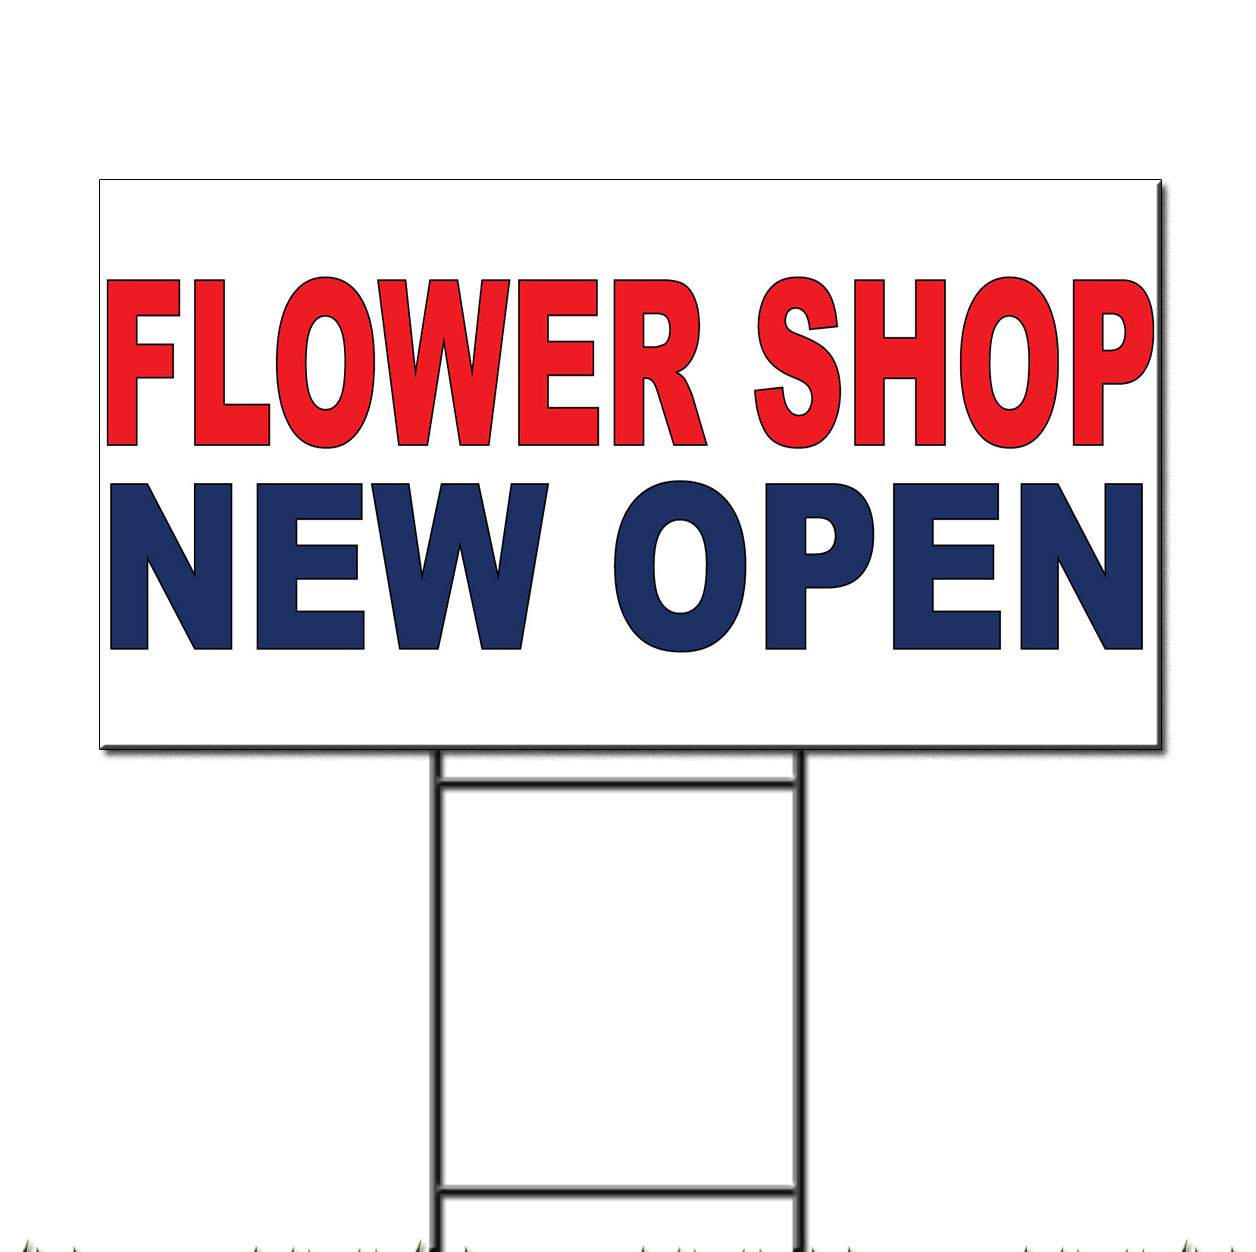 Flower Shop New Open Red Blue Corrugated Plastic Yard Sign